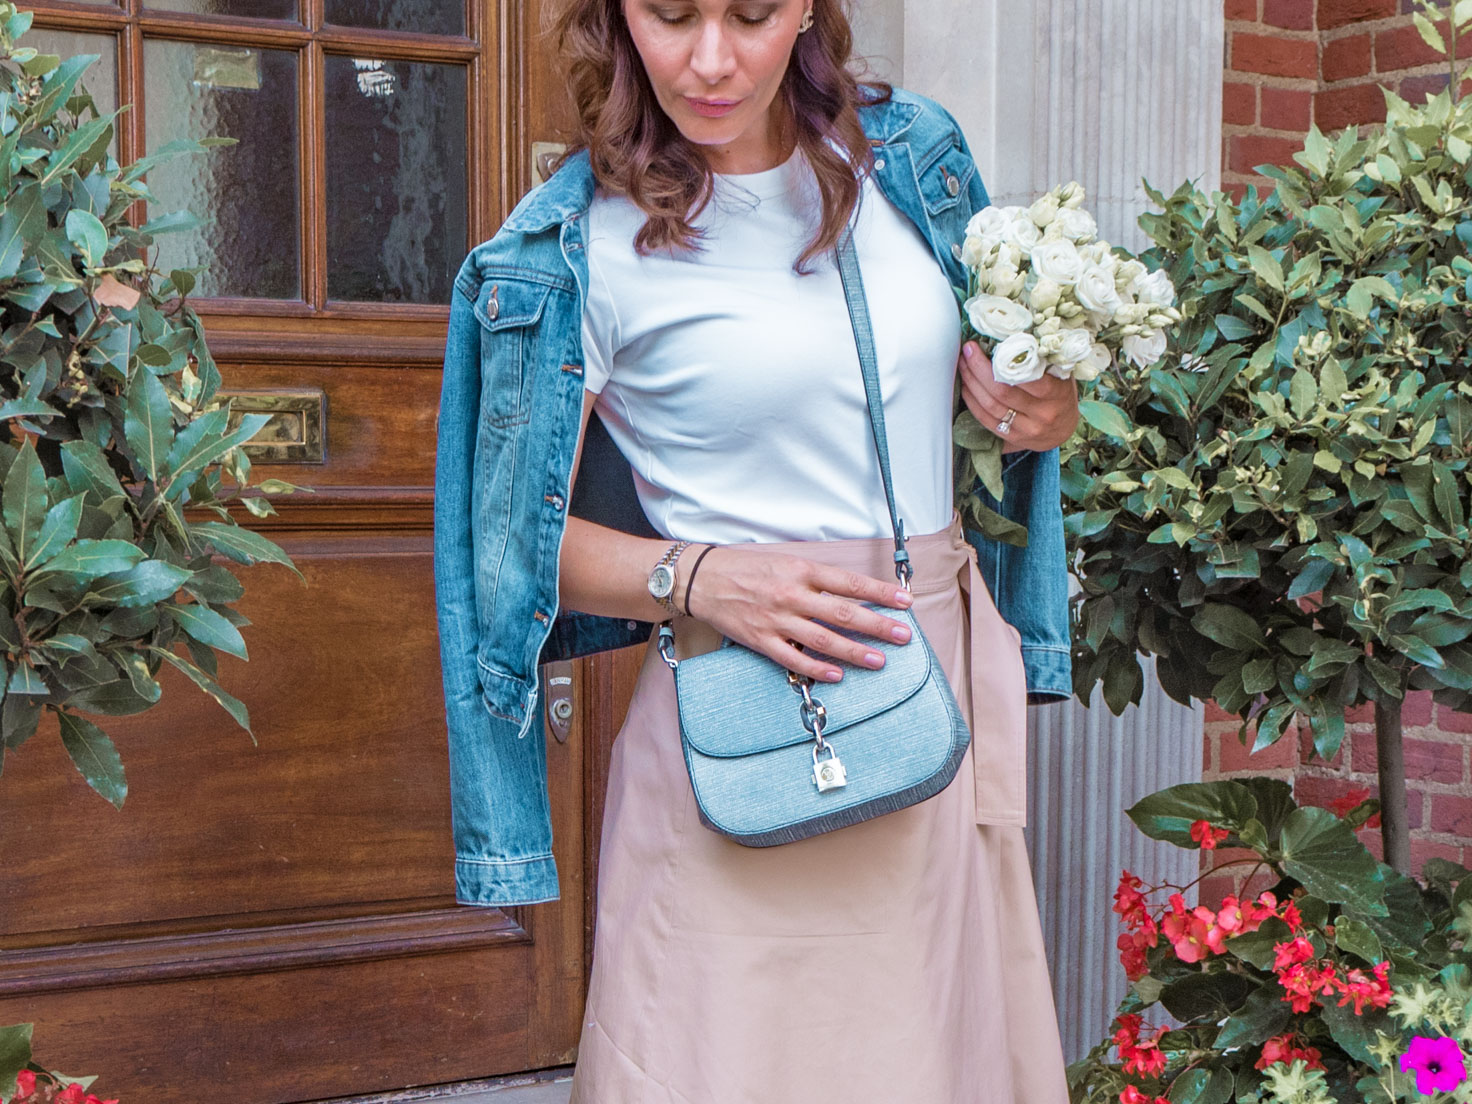 Louis Vuitton Chain It bag and how to create chic look